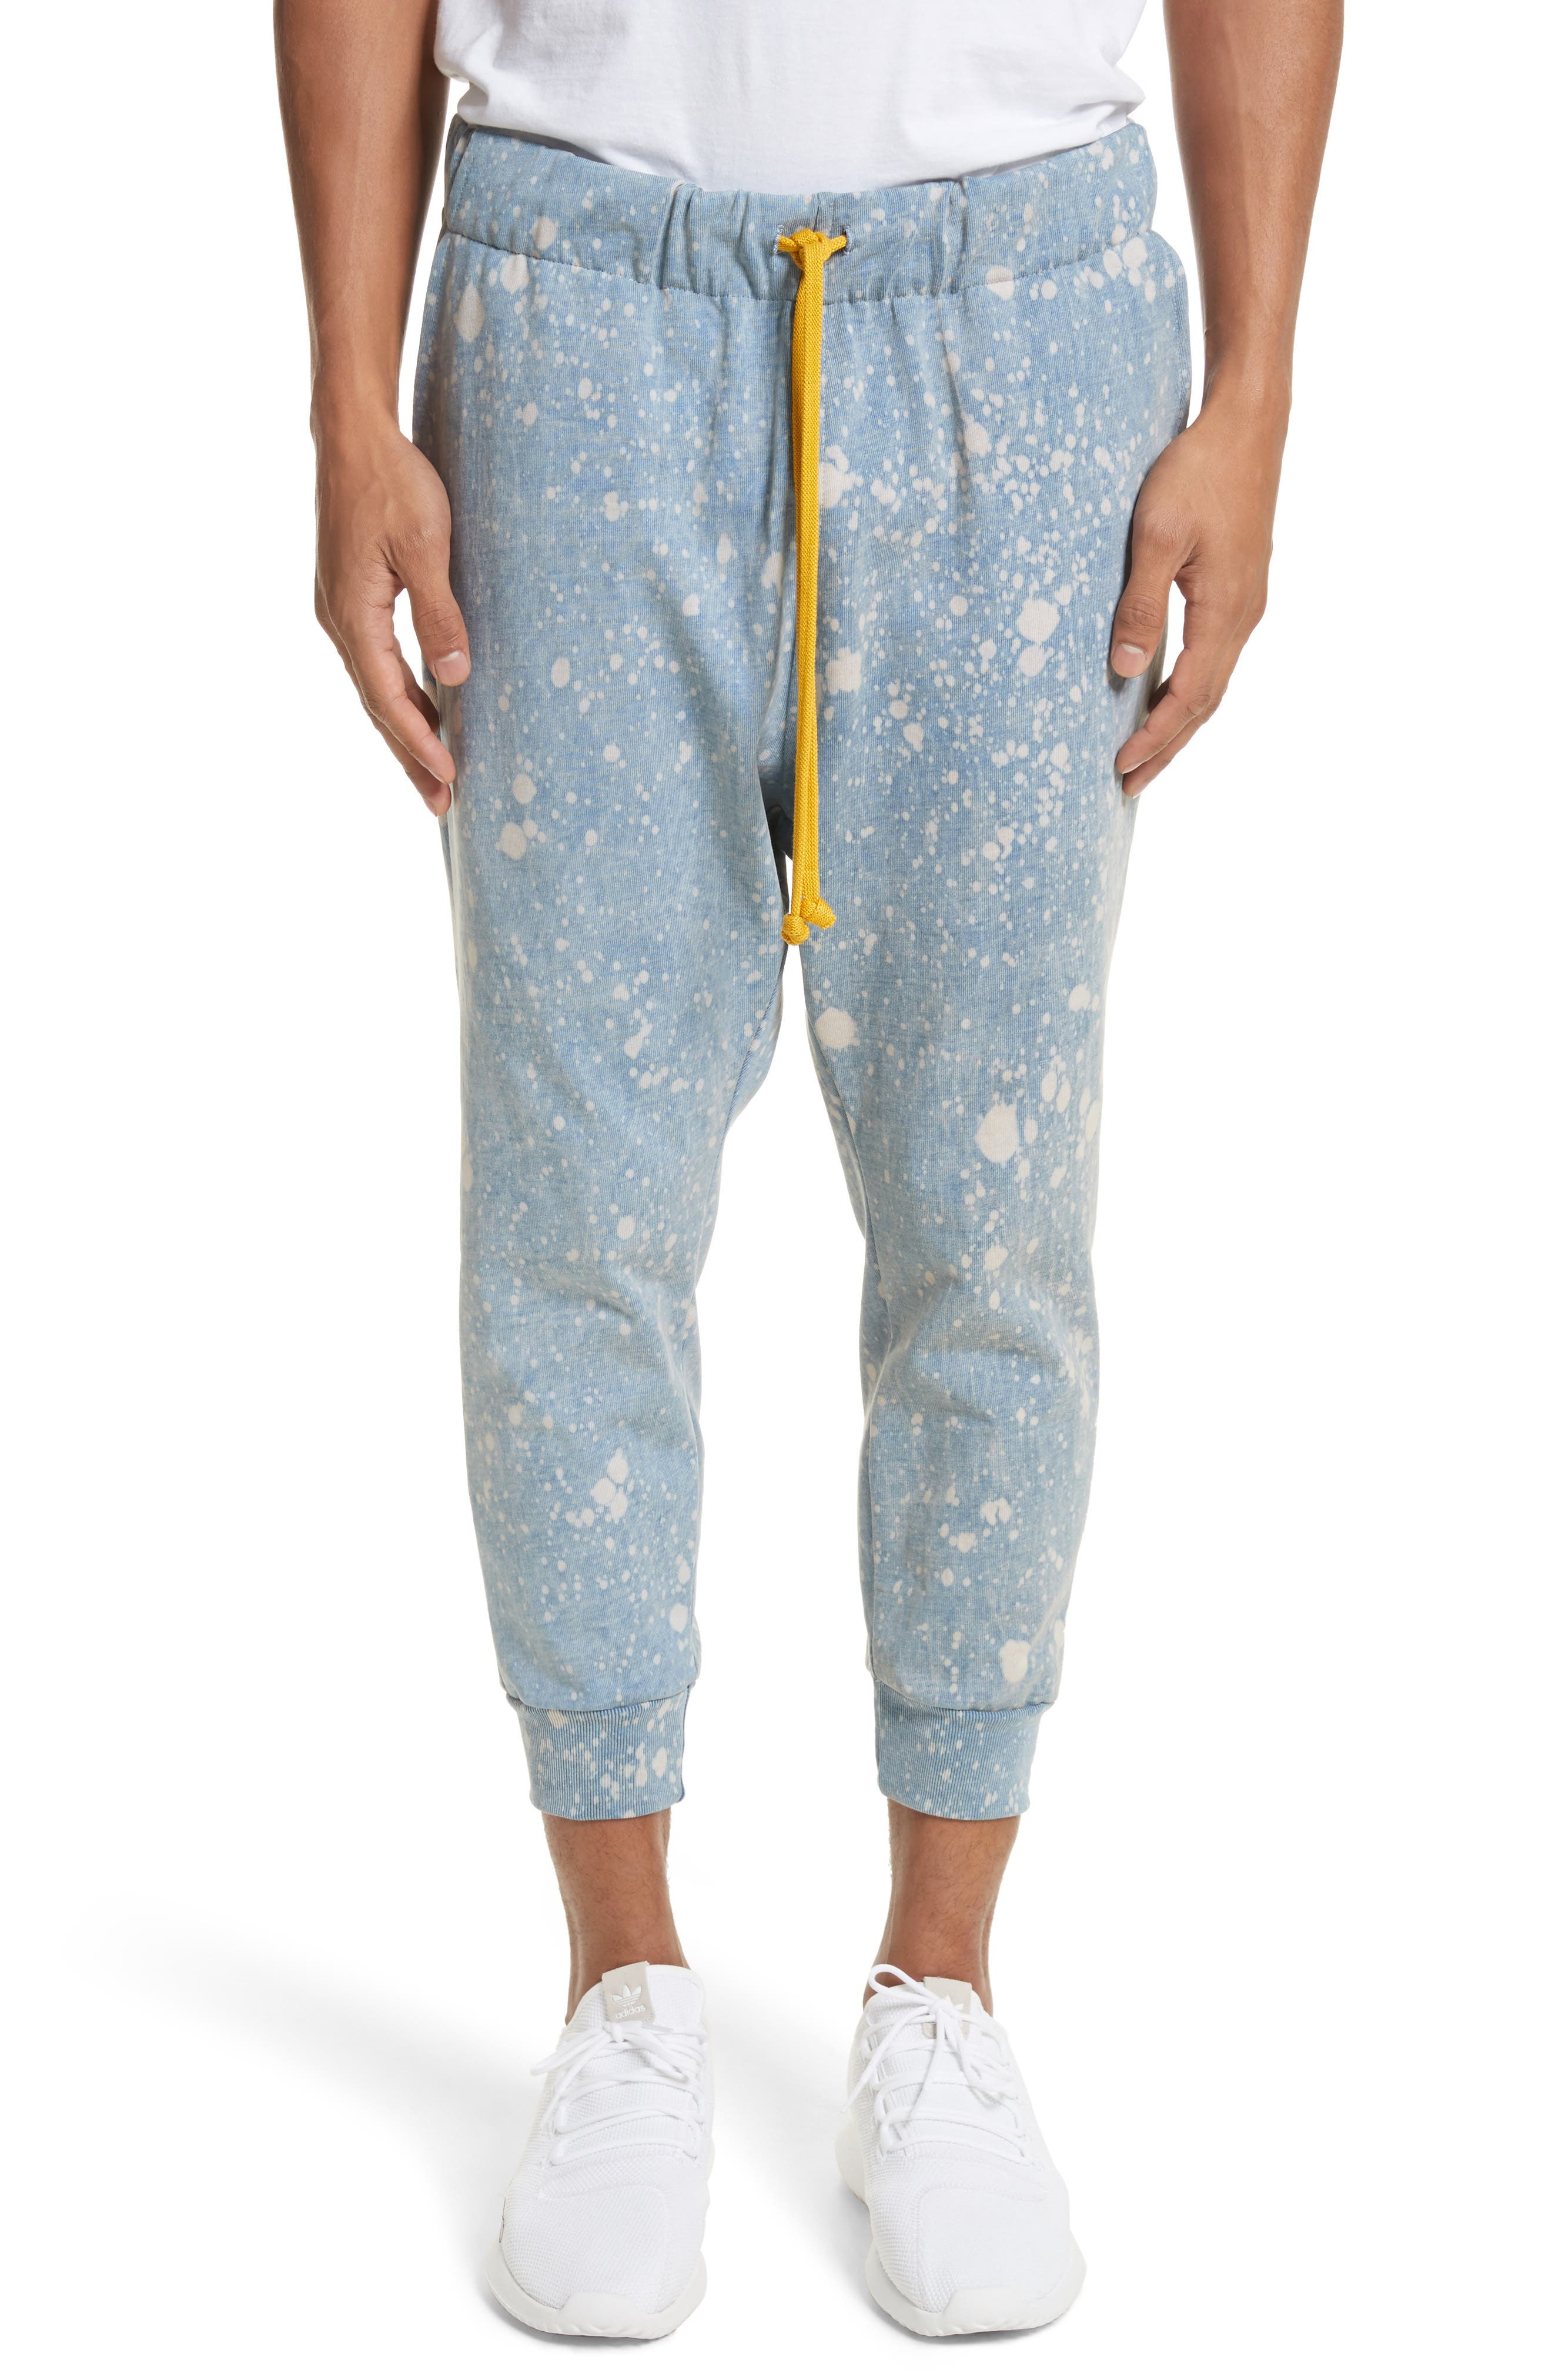 Loki Jogger Pants,                             Main thumbnail 1, color,                             Indigo Splash